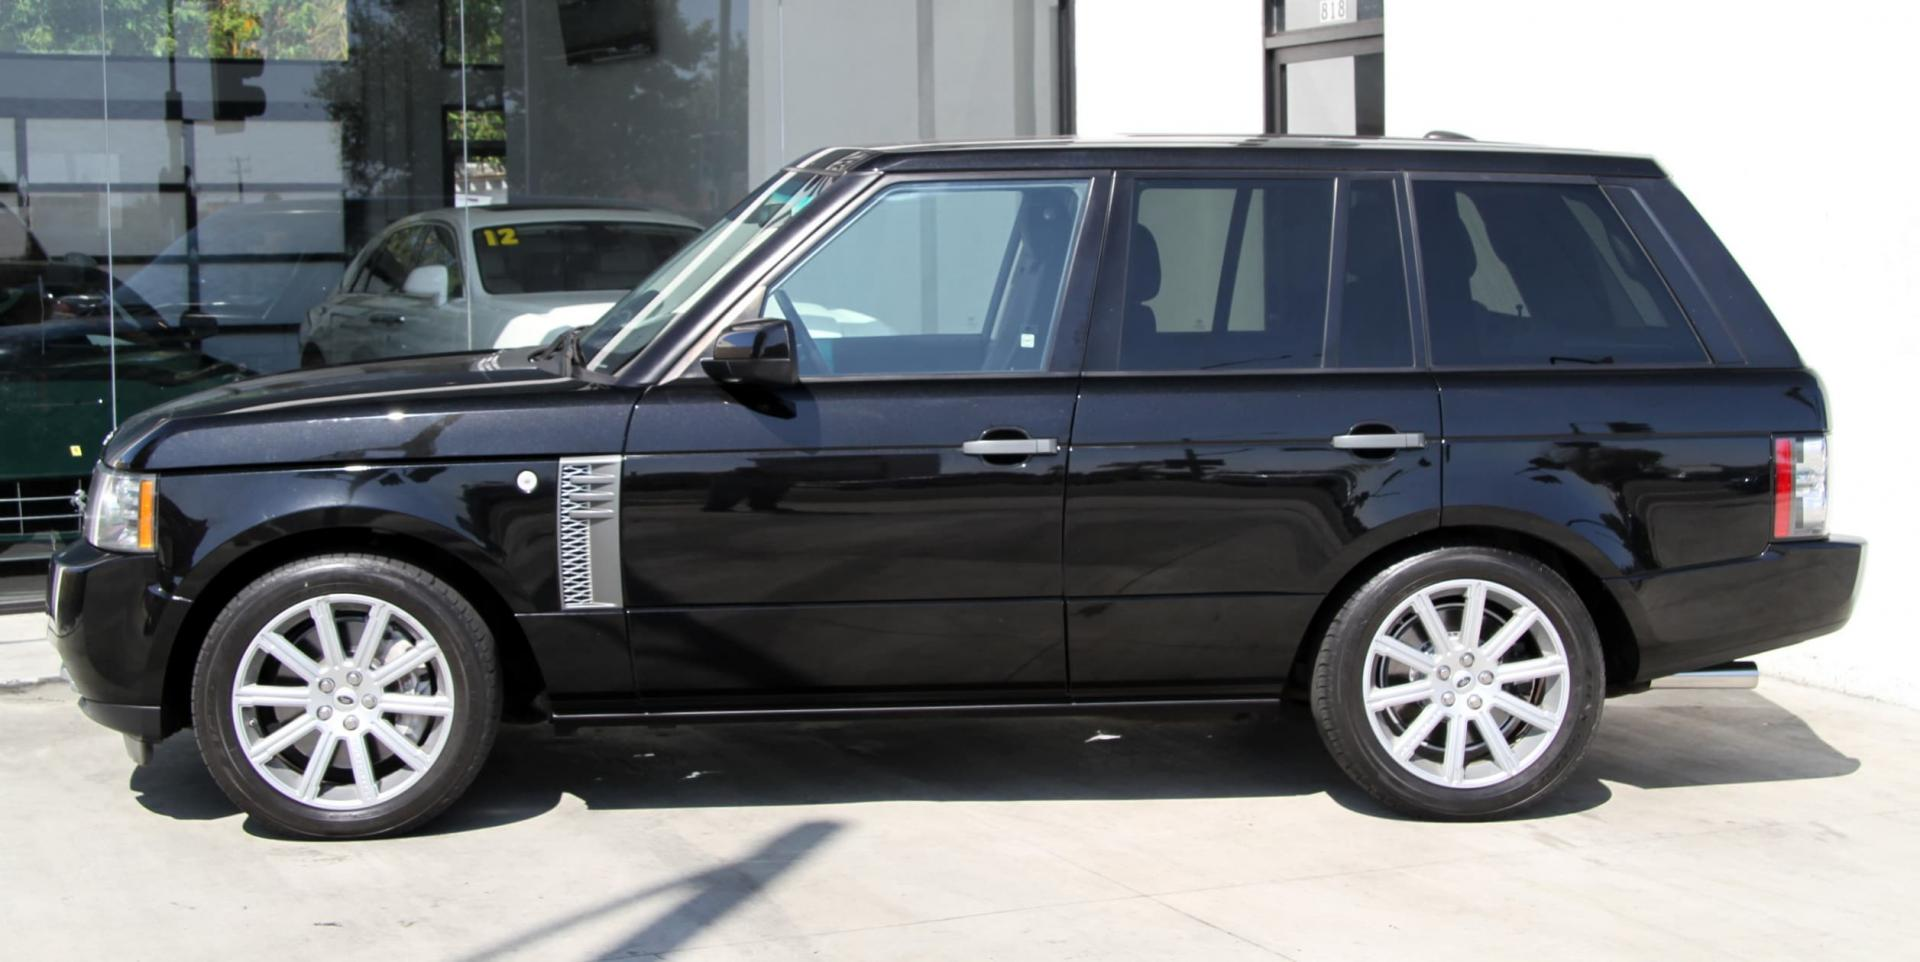 2011 land rover range rover supercharged stock 5969 for for General motors dealers near me